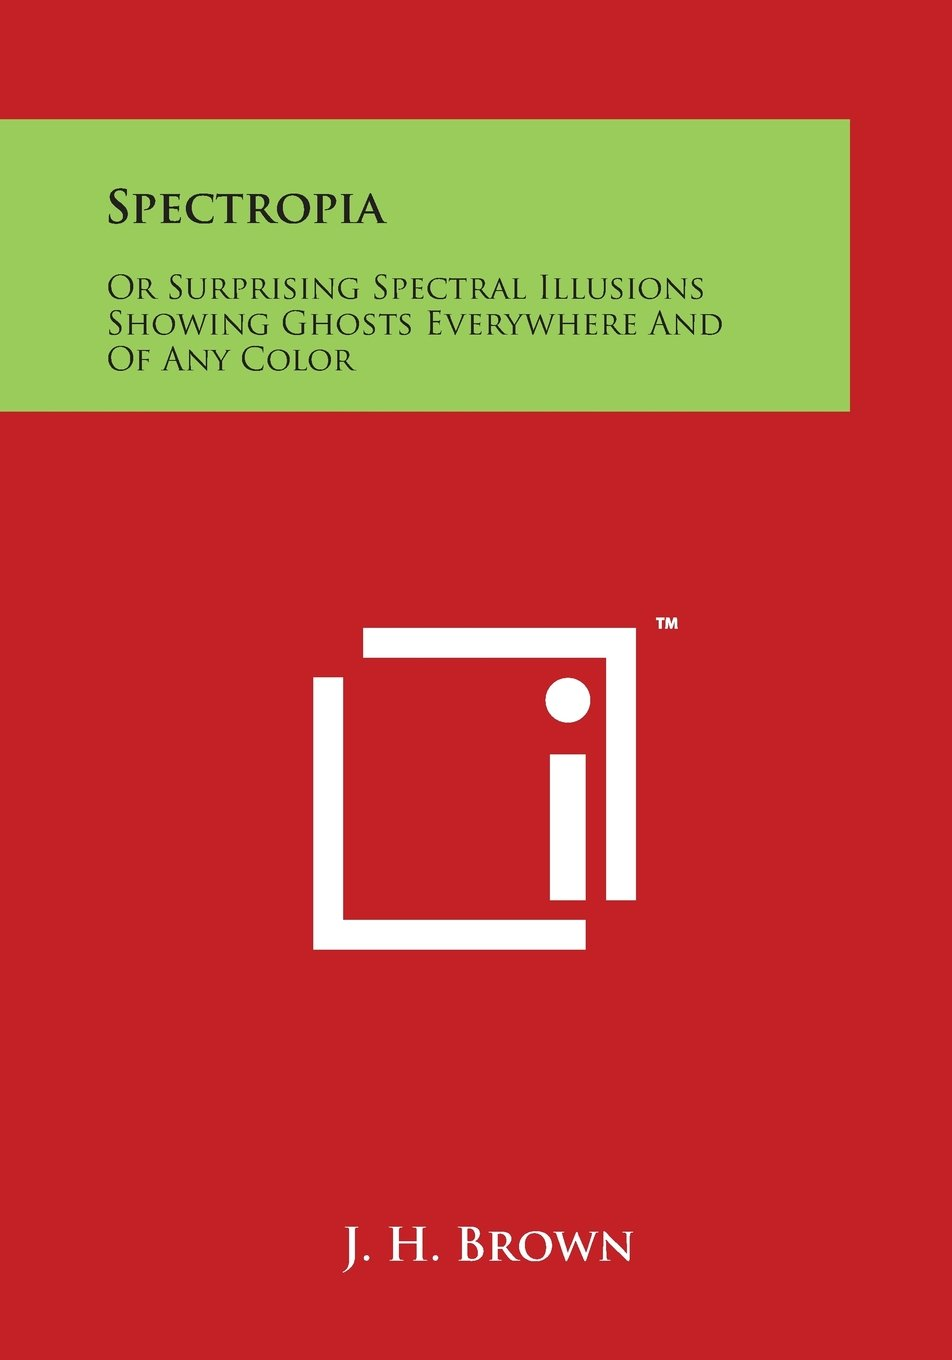 Download Spectropia: Or Surprising Spectral Illusions Showing Ghosts Everywhere and of Any Color pdf epub